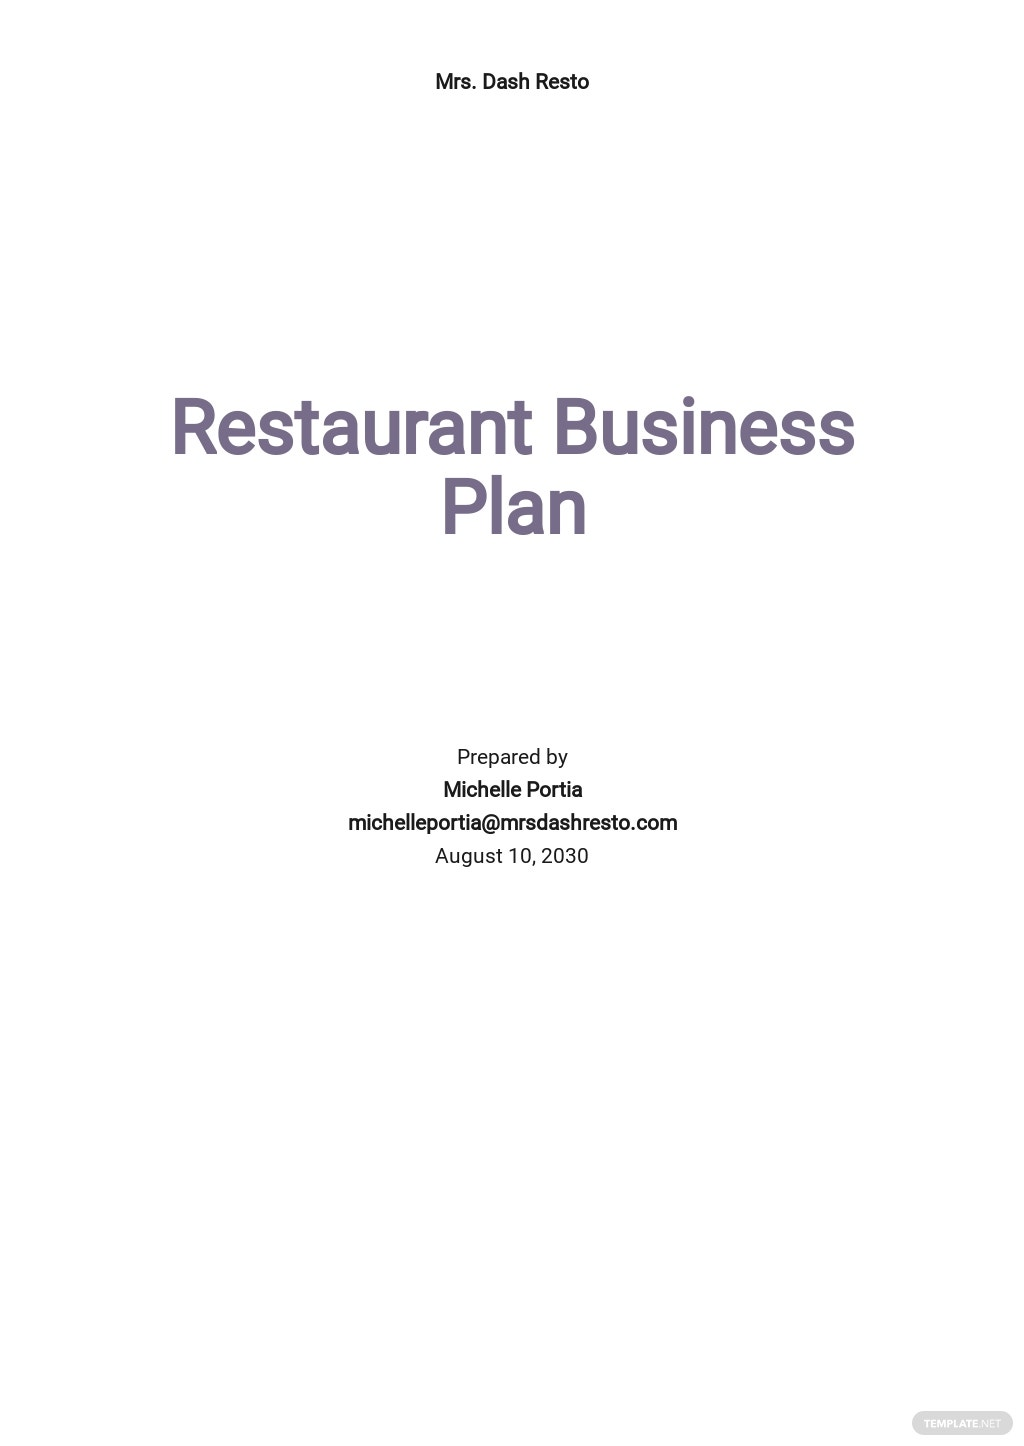 Restaurant Business Plan Outline Template